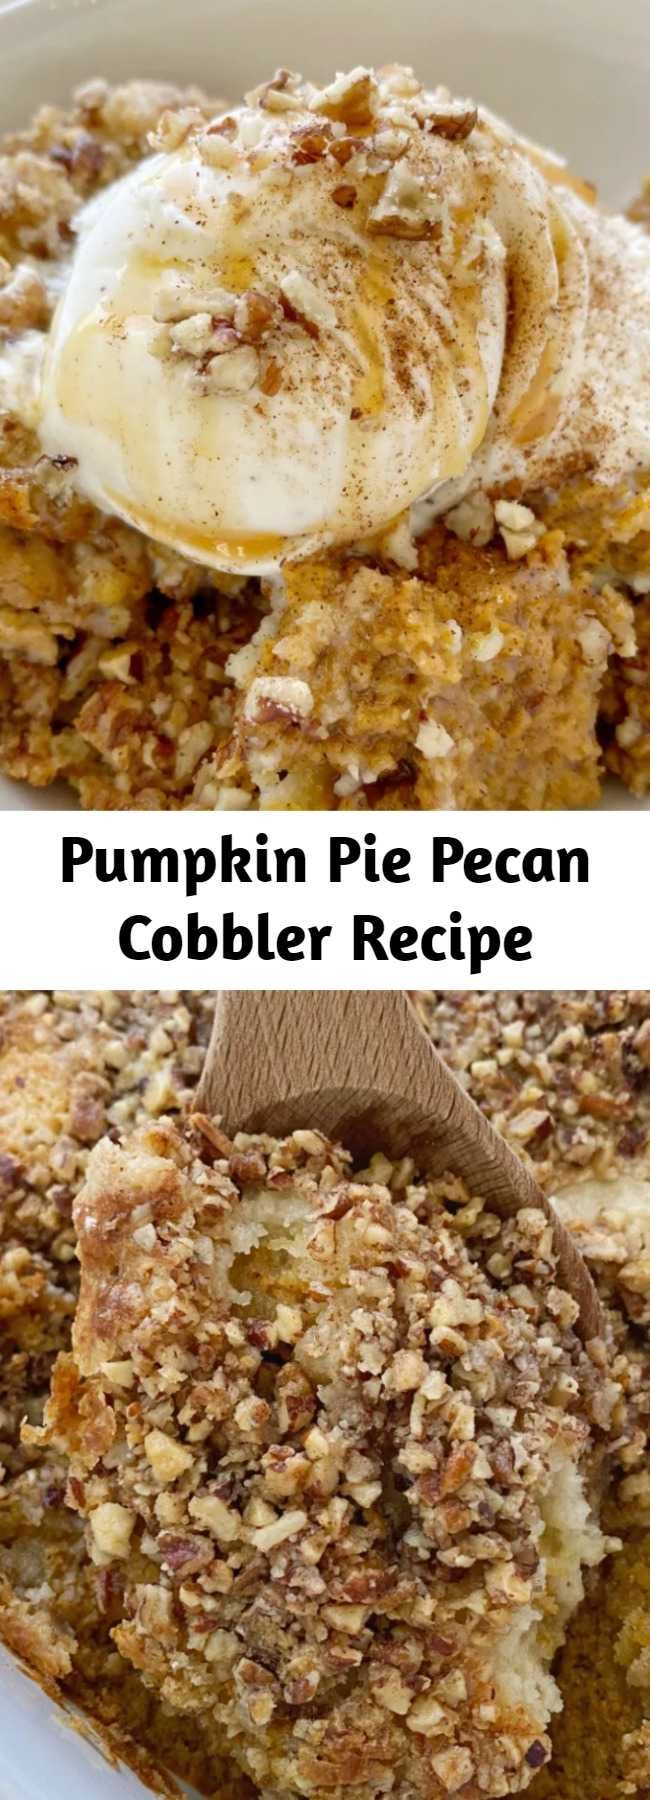 Pumpkin Pie Pecan Cobbler Recipe - Pumpkin Pie Pecan Cobbler has a creamy pumpkin pie layer topped with a sweet spiced pecan crumble topping. Serve with a scoop of vanilla ice cream for the best pumpkin cobbler recipe that's perfect for Fall.